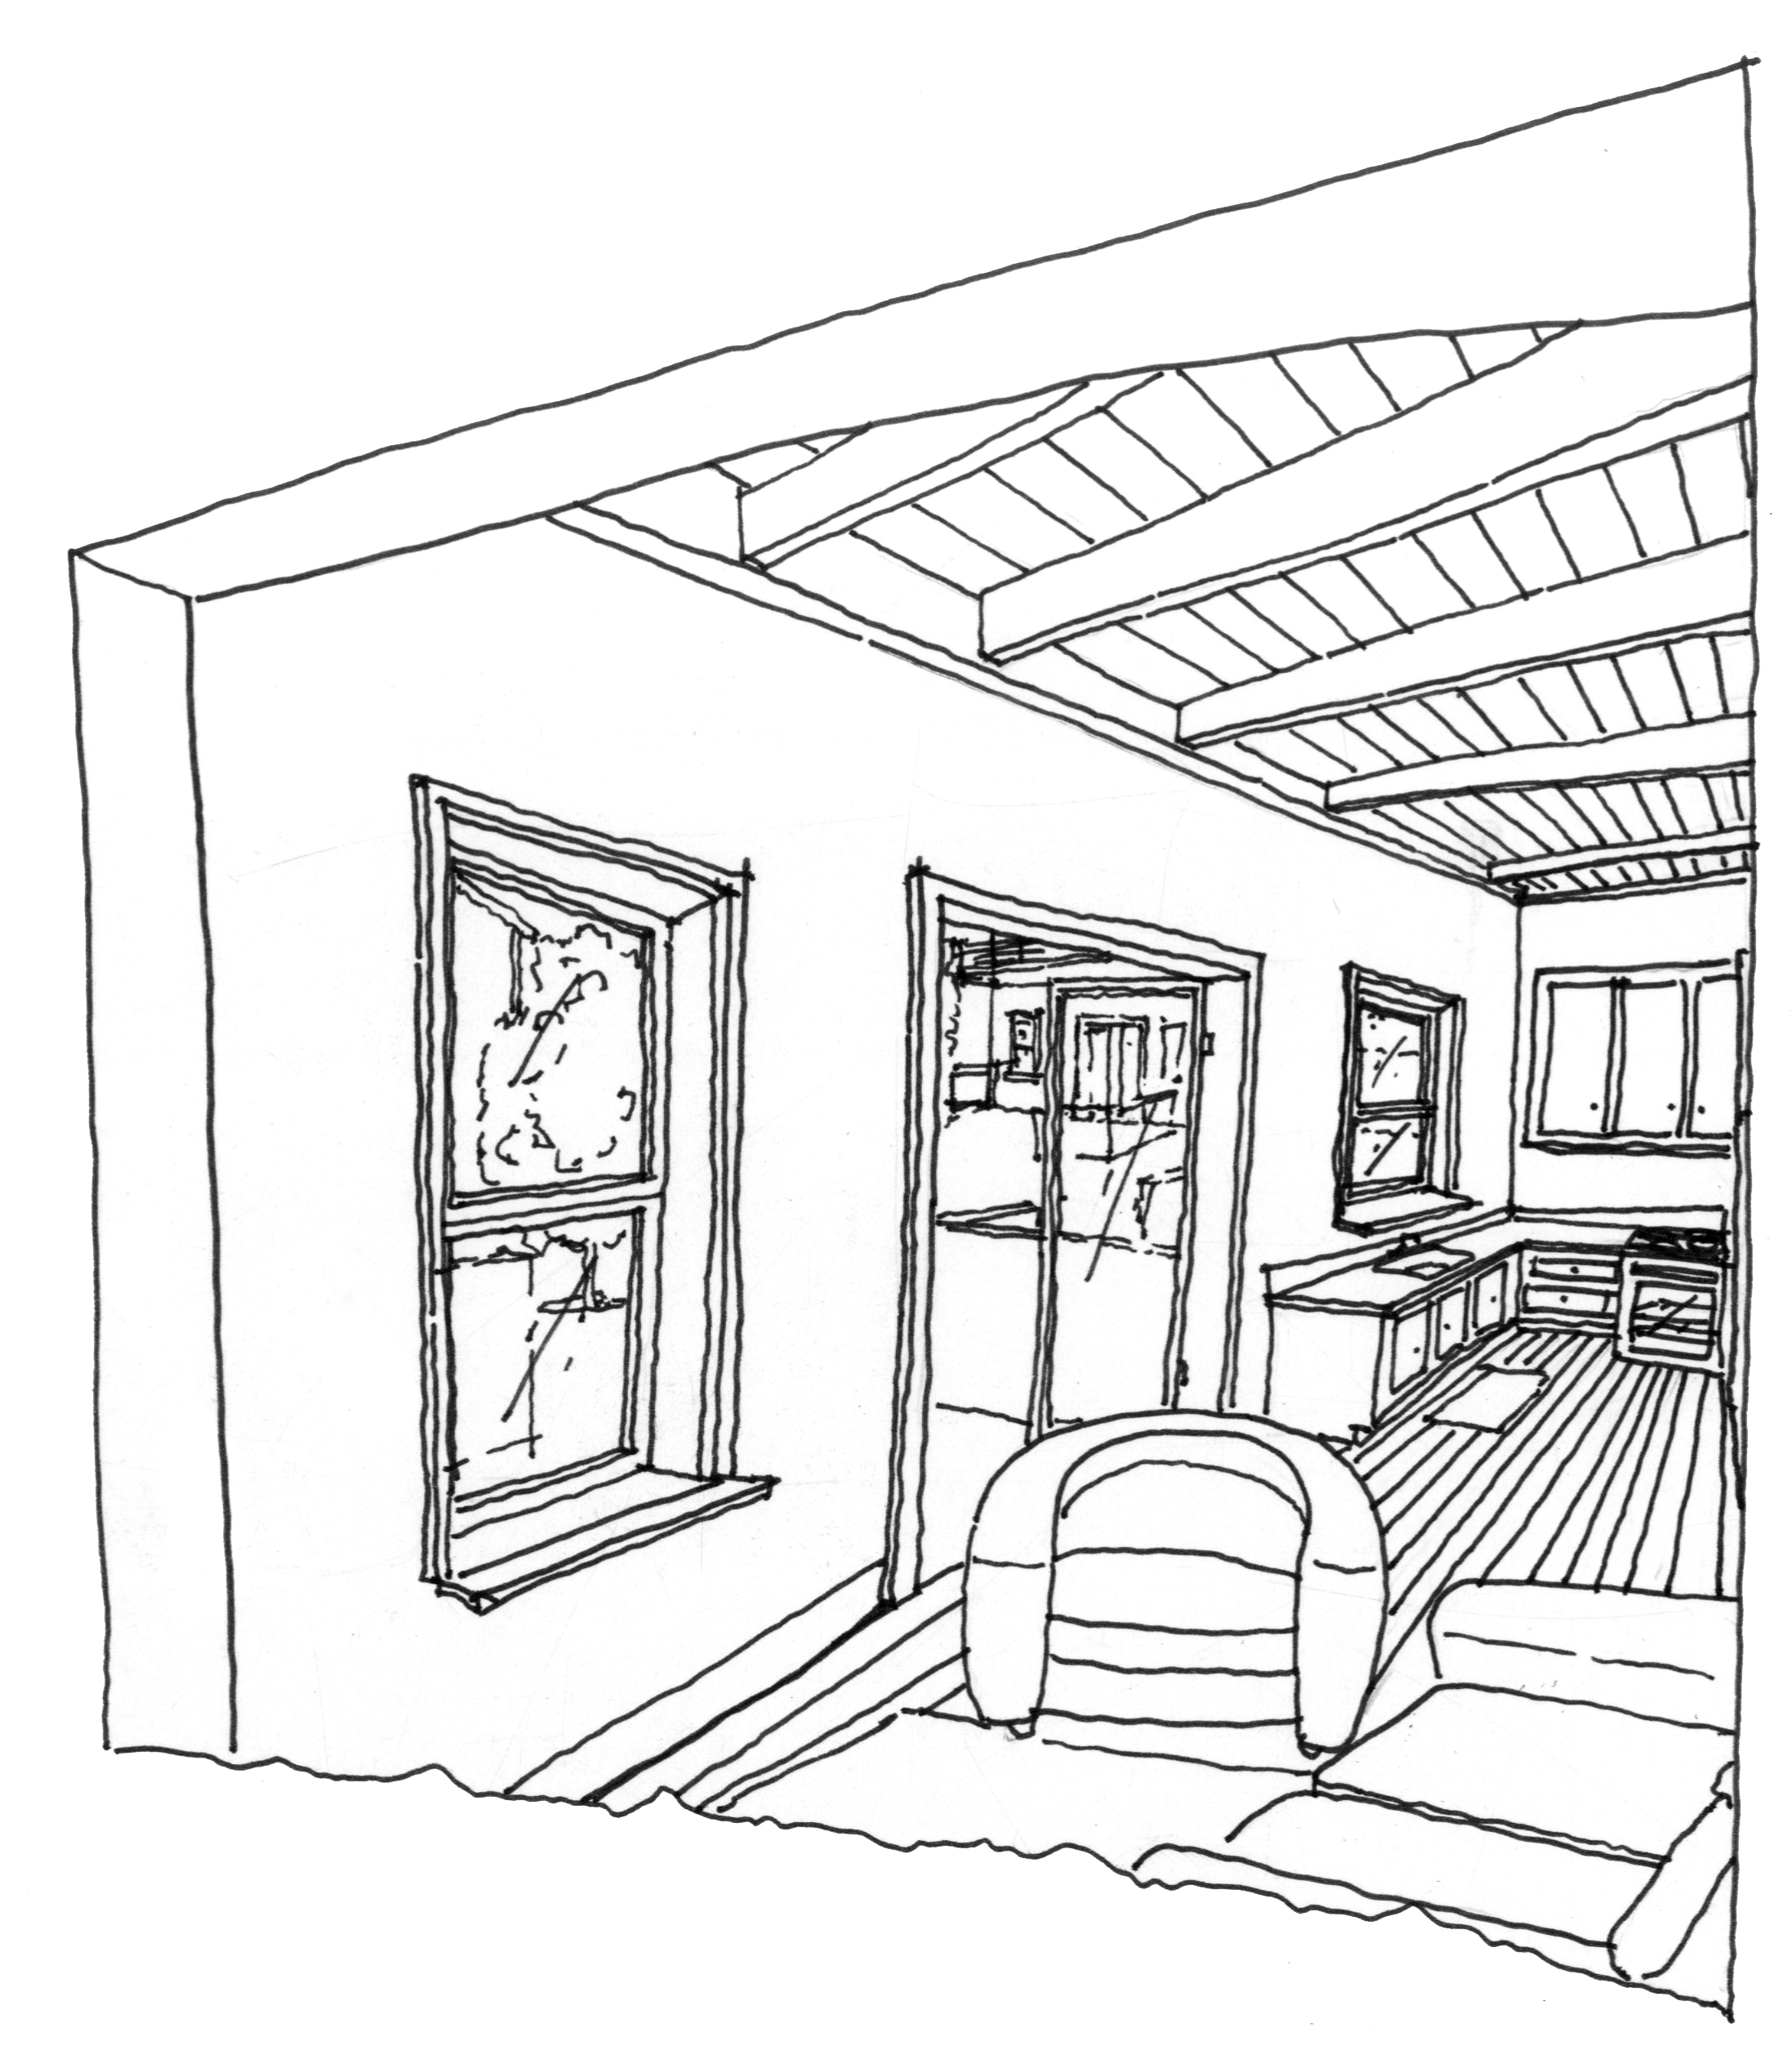 Process: Interior View